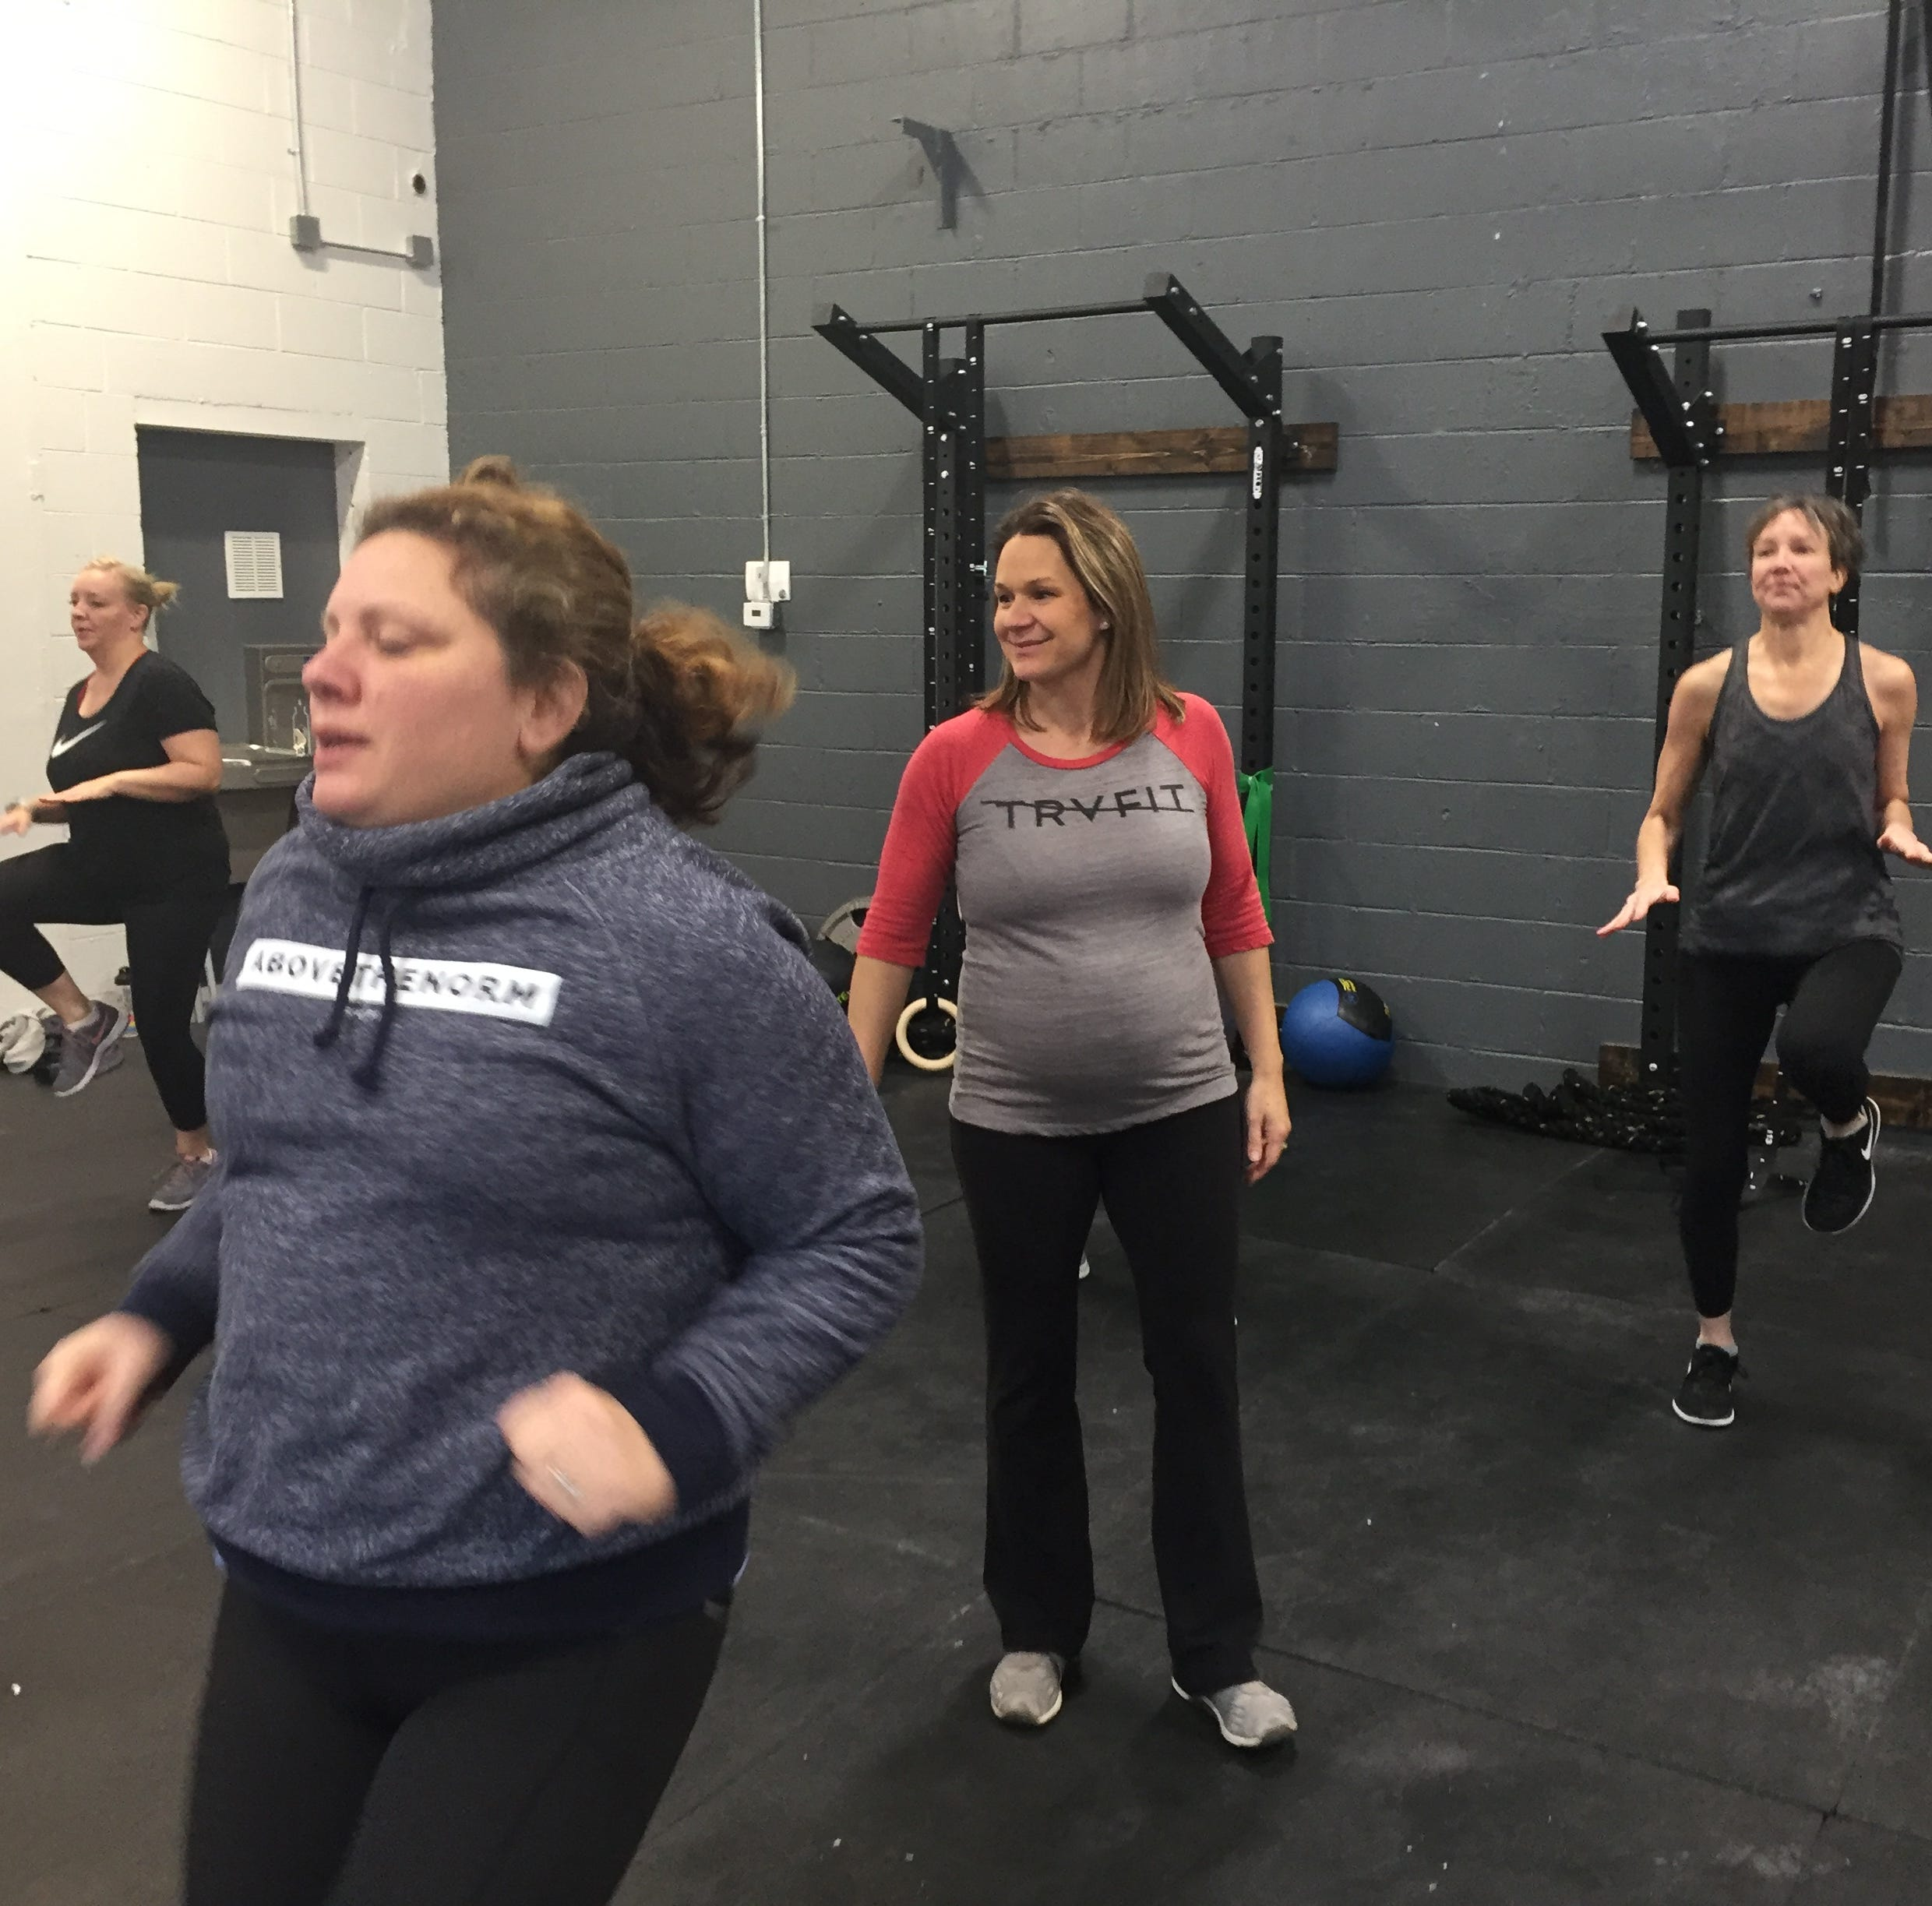 Fitness center moves into former auto shop in Pinckney, 'nano-brewery' also eyes location